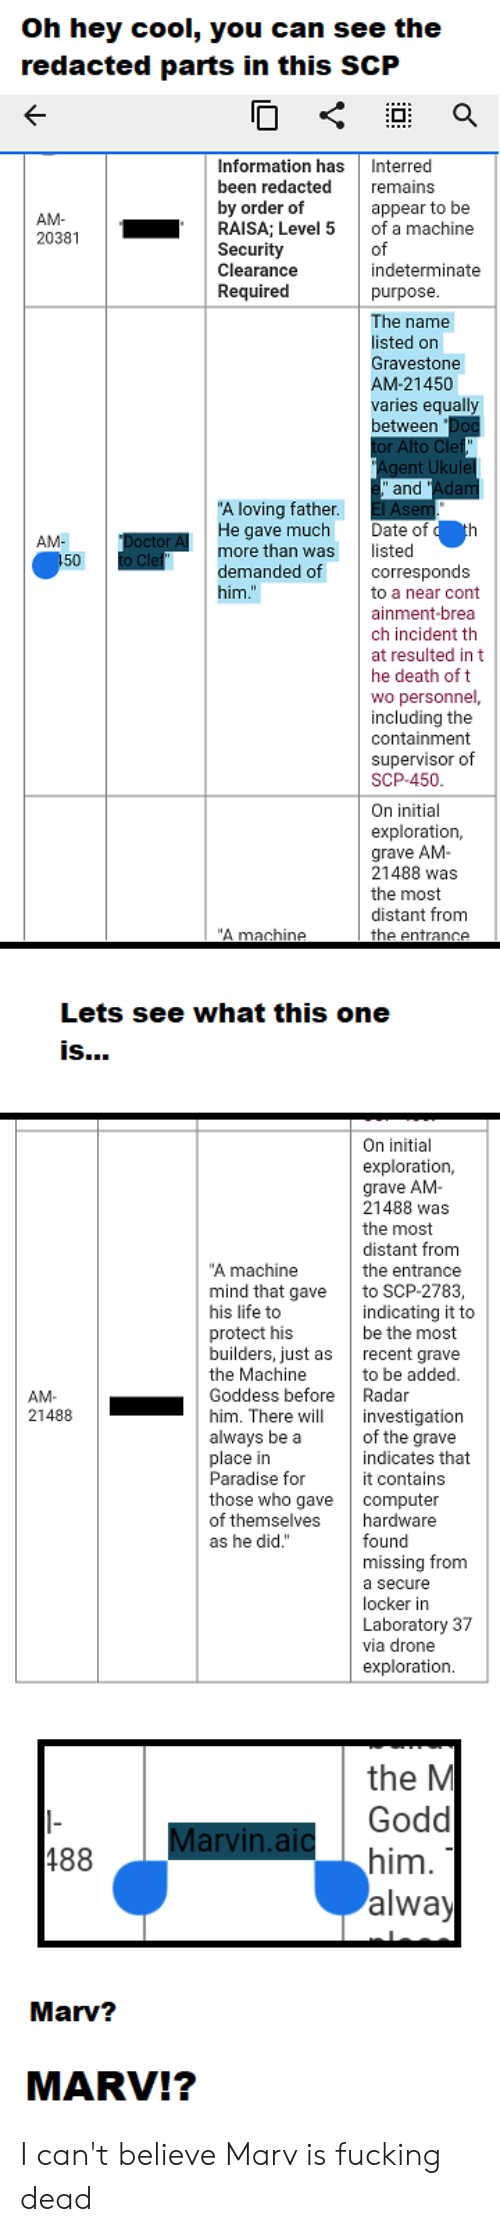 """Drone, Fucking, and Life: oh hey cool, you cah see the  redacted parts in this SCP  Information has Interred  been redacted remains  by order of  appear to be  AM-  20381  RAISA; Level 5  of a machine  Security  Clearance  Required  of  indeterminate  purpose  The name  listed on  Gravestone  AM-21450  varies equally  between  and  """"A loving father  He gave much Date ofth  more than was isted  demanded of  him.""""  AM-  50  corresponds  to a near cont  ainment-brea  ch incident th  at resulted in t  he death of t  wo personnel,  including the  containment  supervisor of  SCP-450  On initial  exploration,  grave AM  21488 was  the most  distant from  the entrance  """"A machine  Lets see what this one  Is  On initial  exploration,  grave AM  21488 was  the most  distant from  the entrance  A machine  mind that gave to SCP-2783,  his life to  protect his  builders, just as recent gra  the Machine  Goddess before Radar  him. There investigation  always be a  place in  Paradise for  those who gave computer  of themselves hardware  as he did.""""  indicating it to  be the most  to be added  AM-  21488  of the grave  indicates that  it contains  found  missing from  a secure  locker in  Laboratory 37  via drone  exploration.  the M  Godd  him  alway  Marv?  MARV!? I can't believe Marv is fucking dead"""